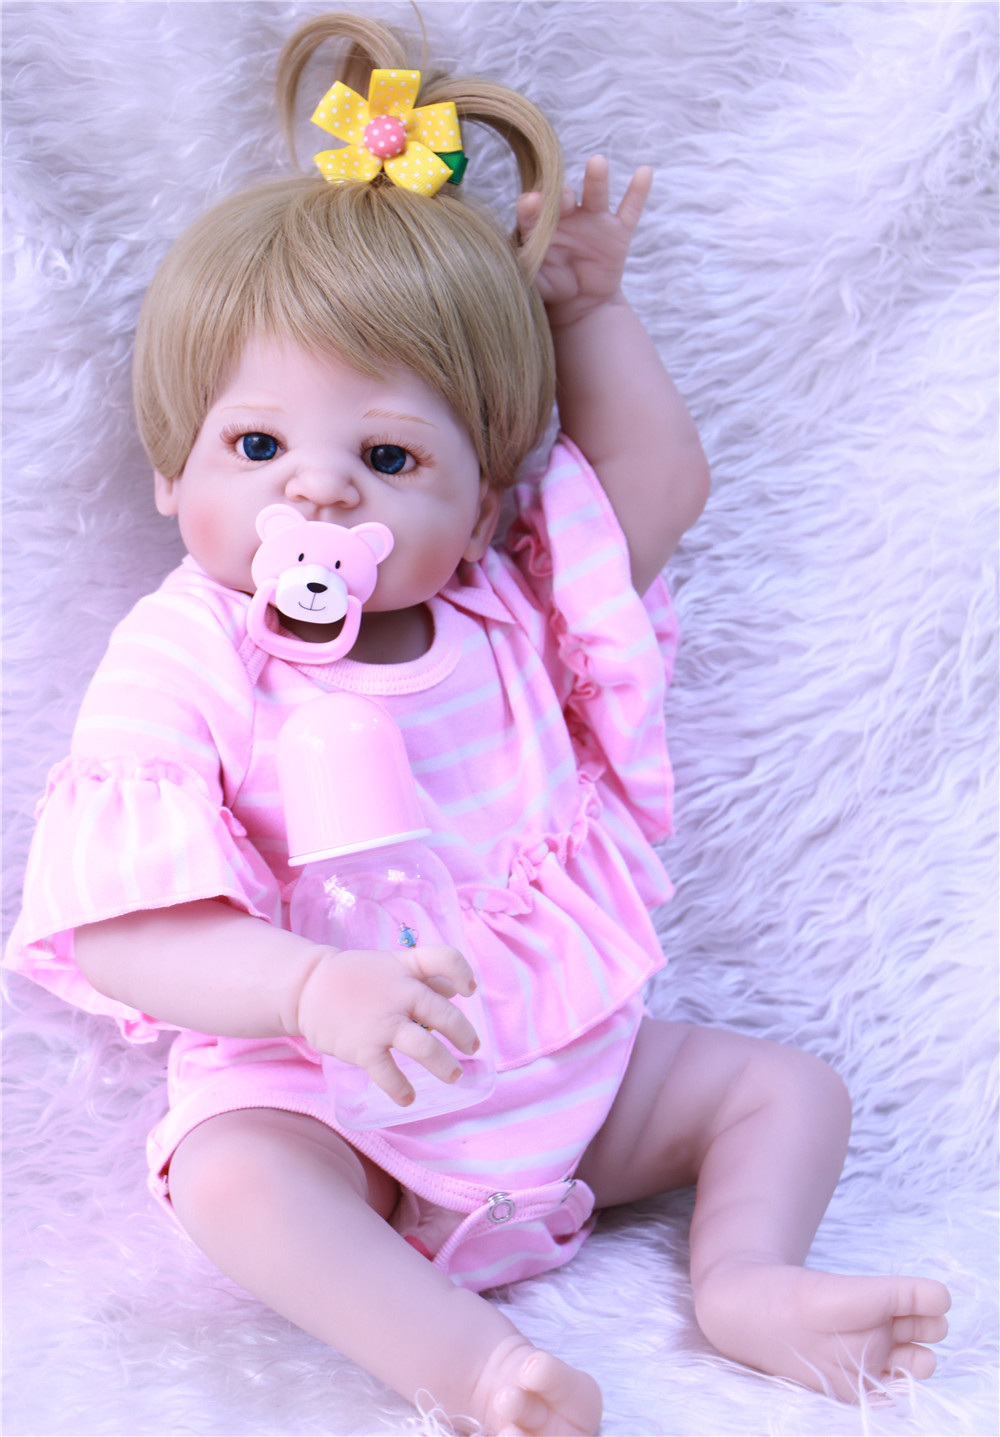 girl bebe reborn Soft Silicone Reborn Dolls menina de silicone menina 55cm Baby Doll Reborn 22 Inch Full Vinyl Boneca Doll new style girl dolls full silicone reborn dolls with beautiful dress adora dolls bebe reborn de silicone menica